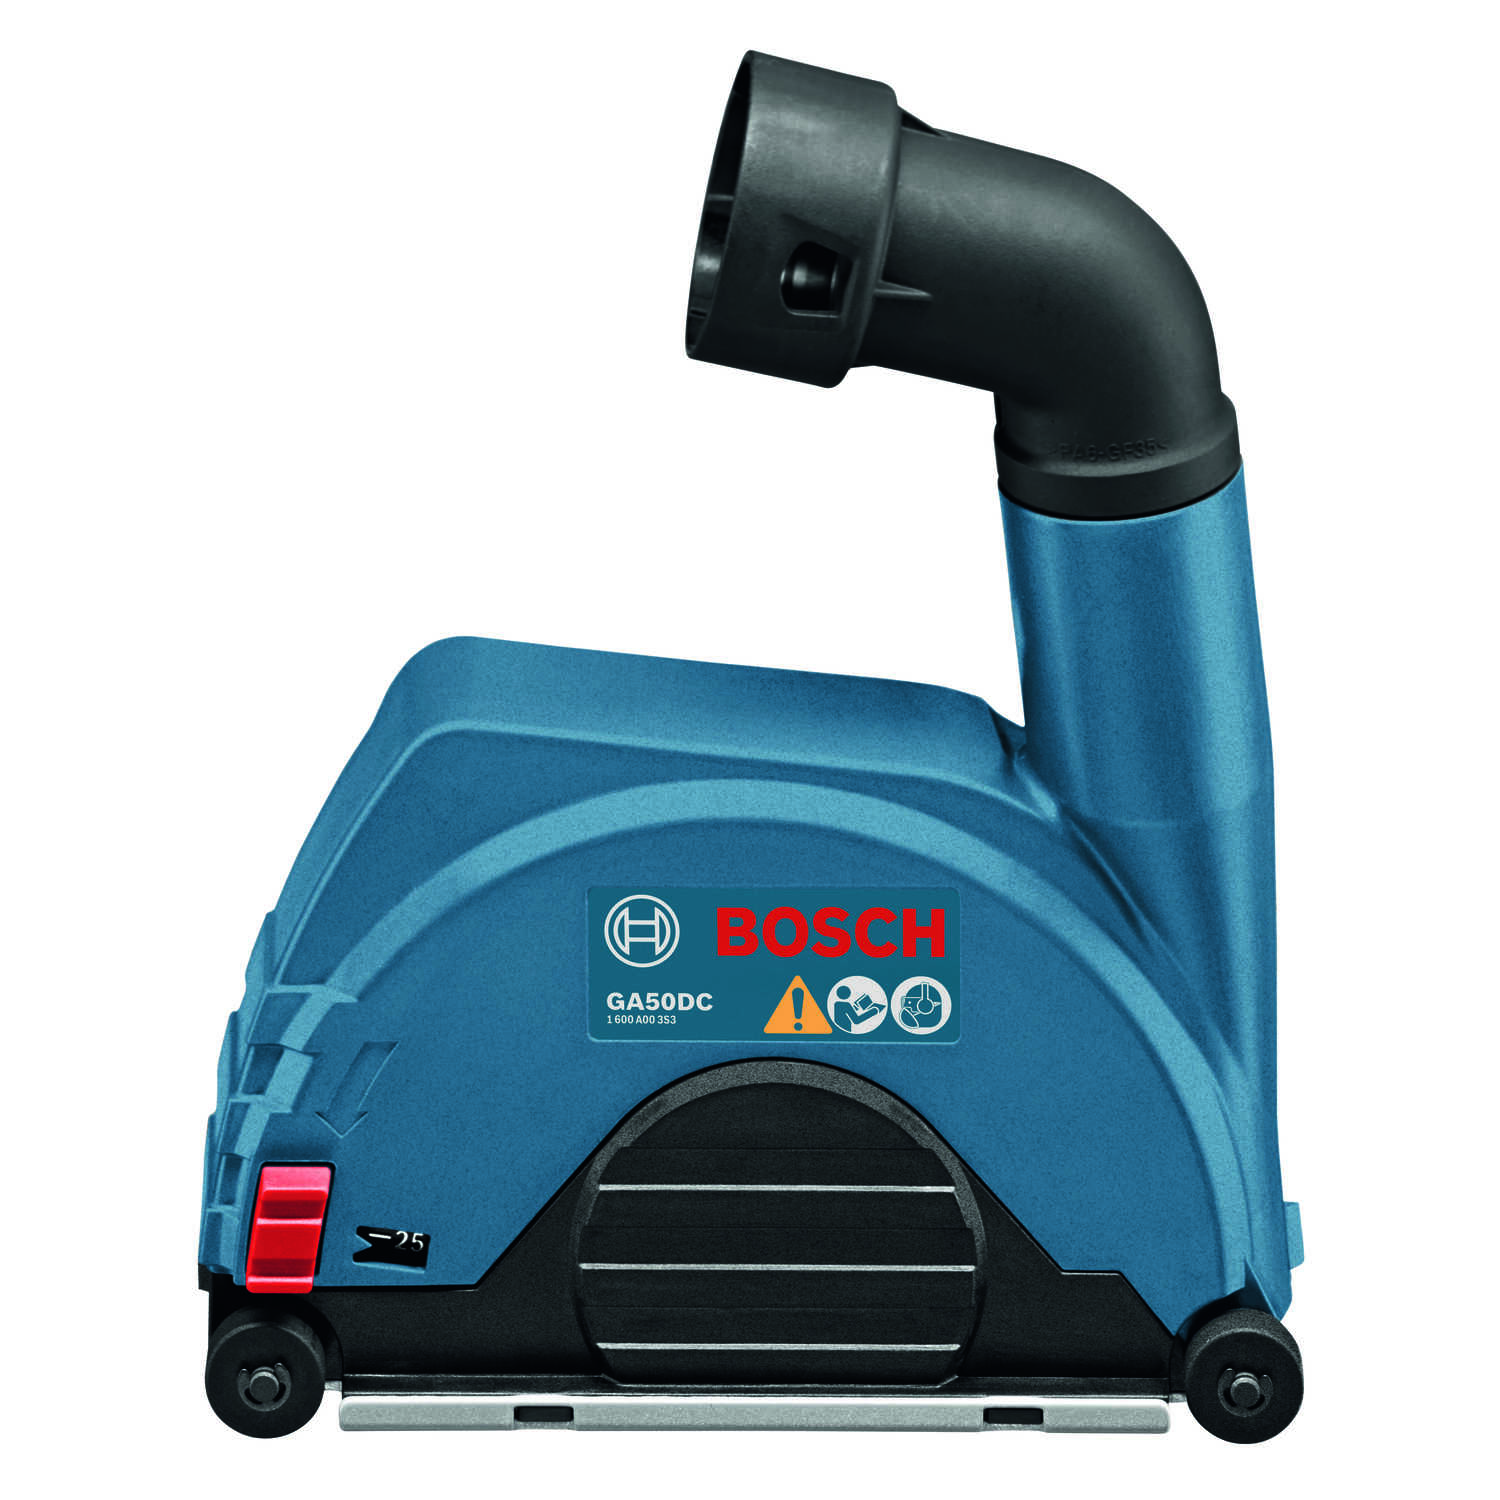 Bosch  7.5 in. L Dust Collection Attachment  1 pc.